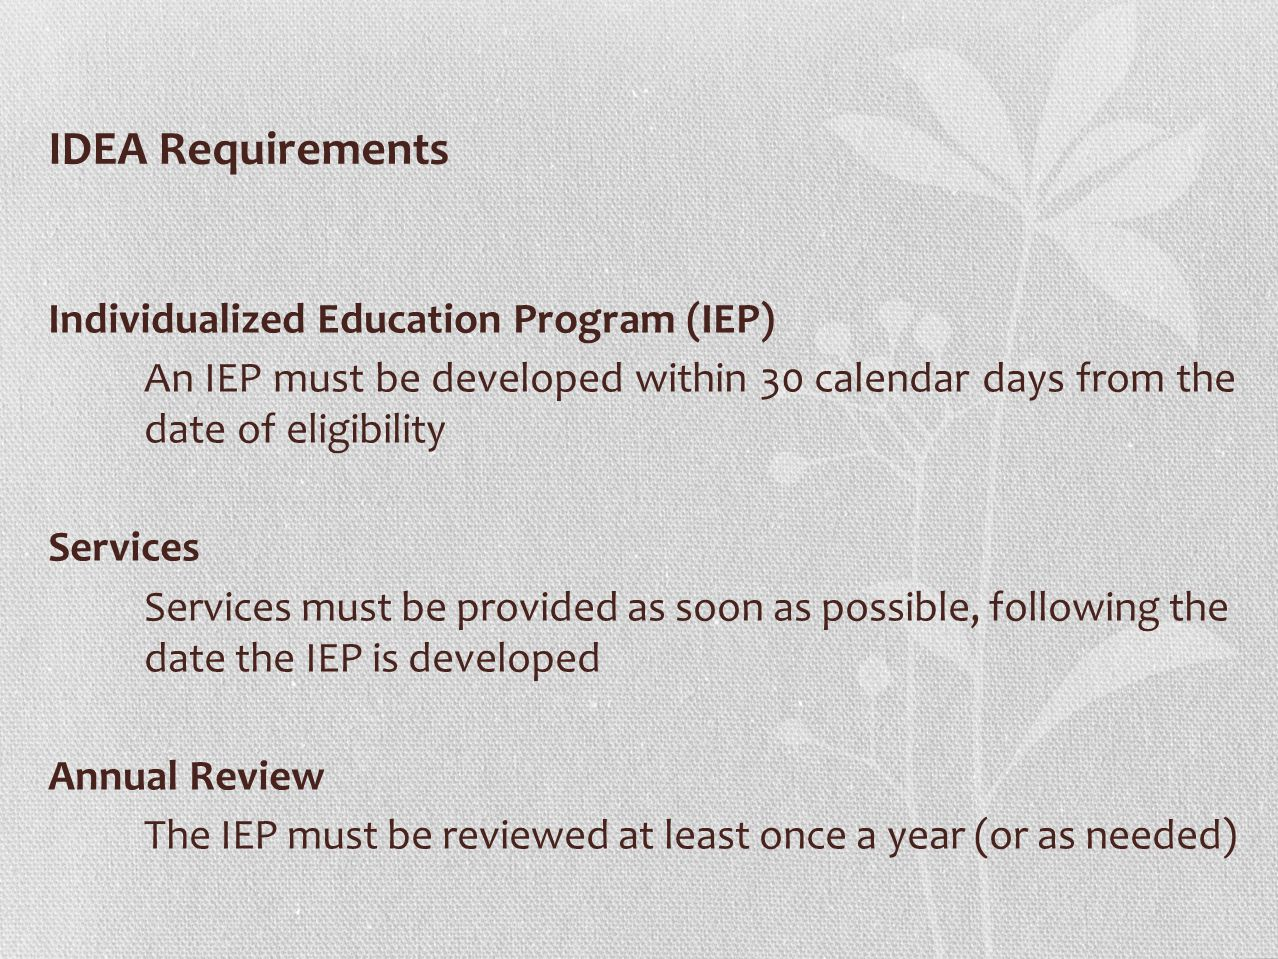 IDEA Requirements Individualized Education Program (IEP) An IEP must be developed within 30 calendar days from the date of eligibility Services Services must be provided as soon as possible, following the date the IEP is developed Annual Review The IEP must be reviewed at least once a year (or as needed)